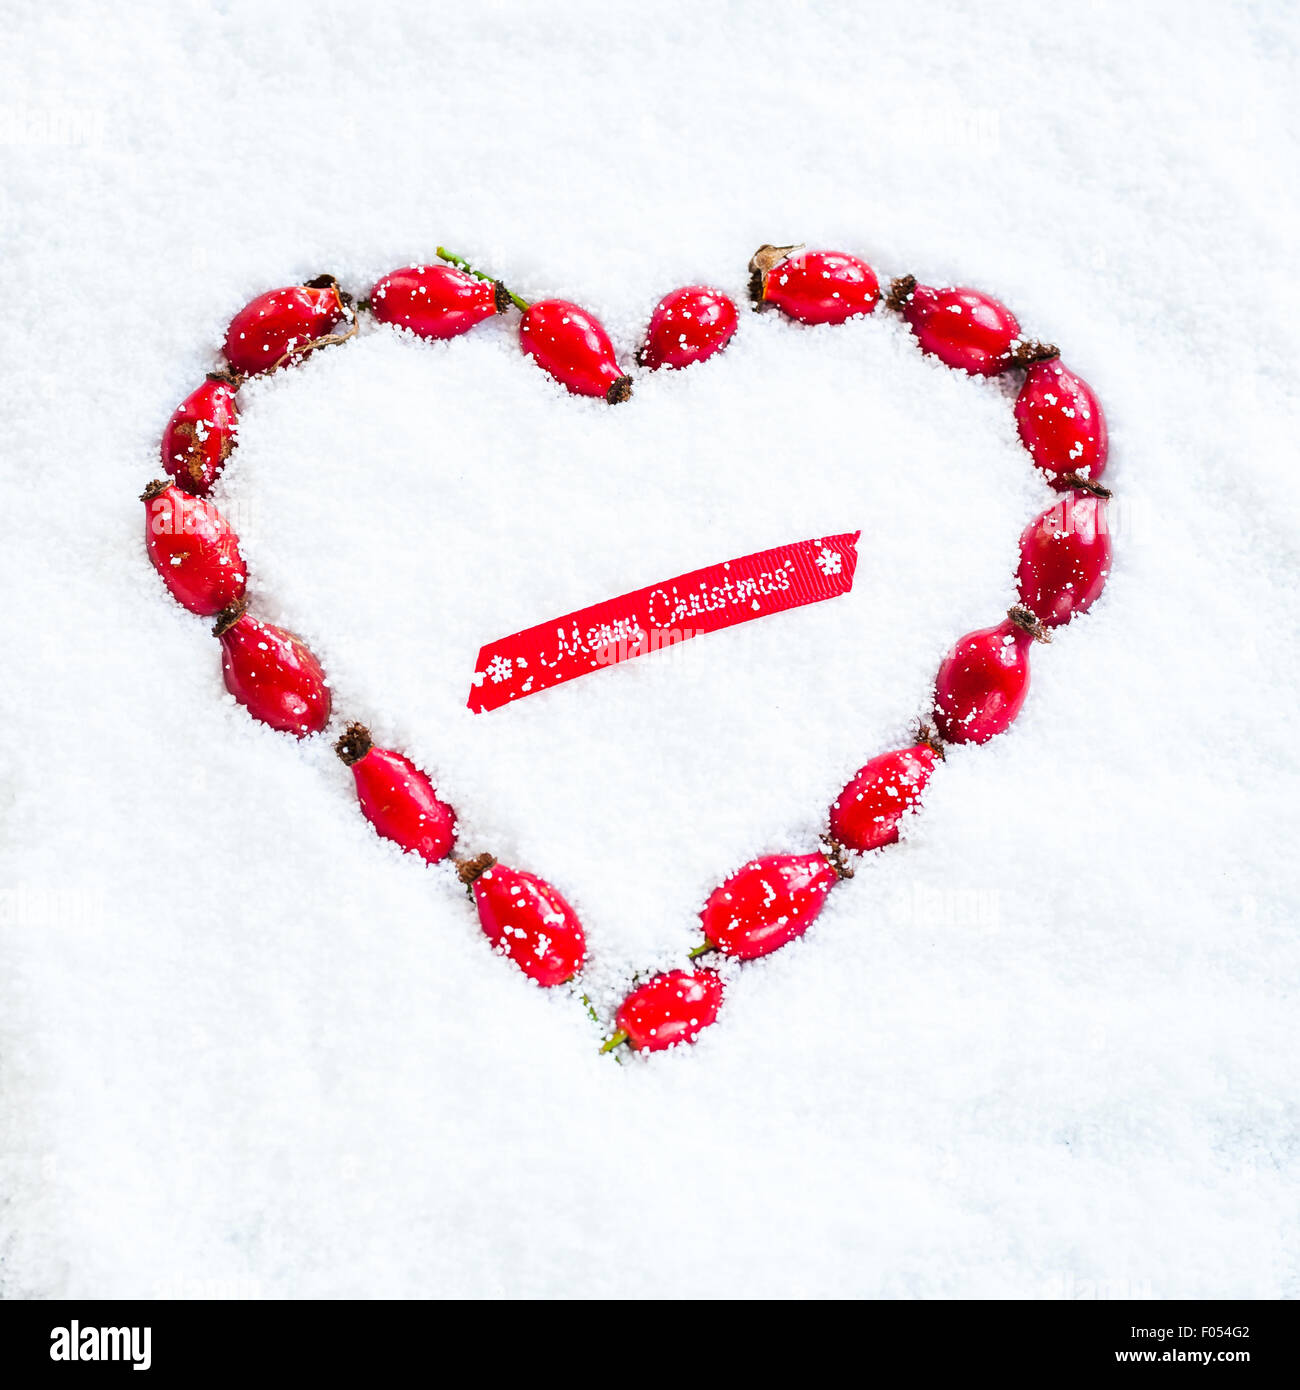 a heart-shaped wreath made with rose hips laid out on the snow, and piece of red ribbon saying Merry Christmas - Stock Image